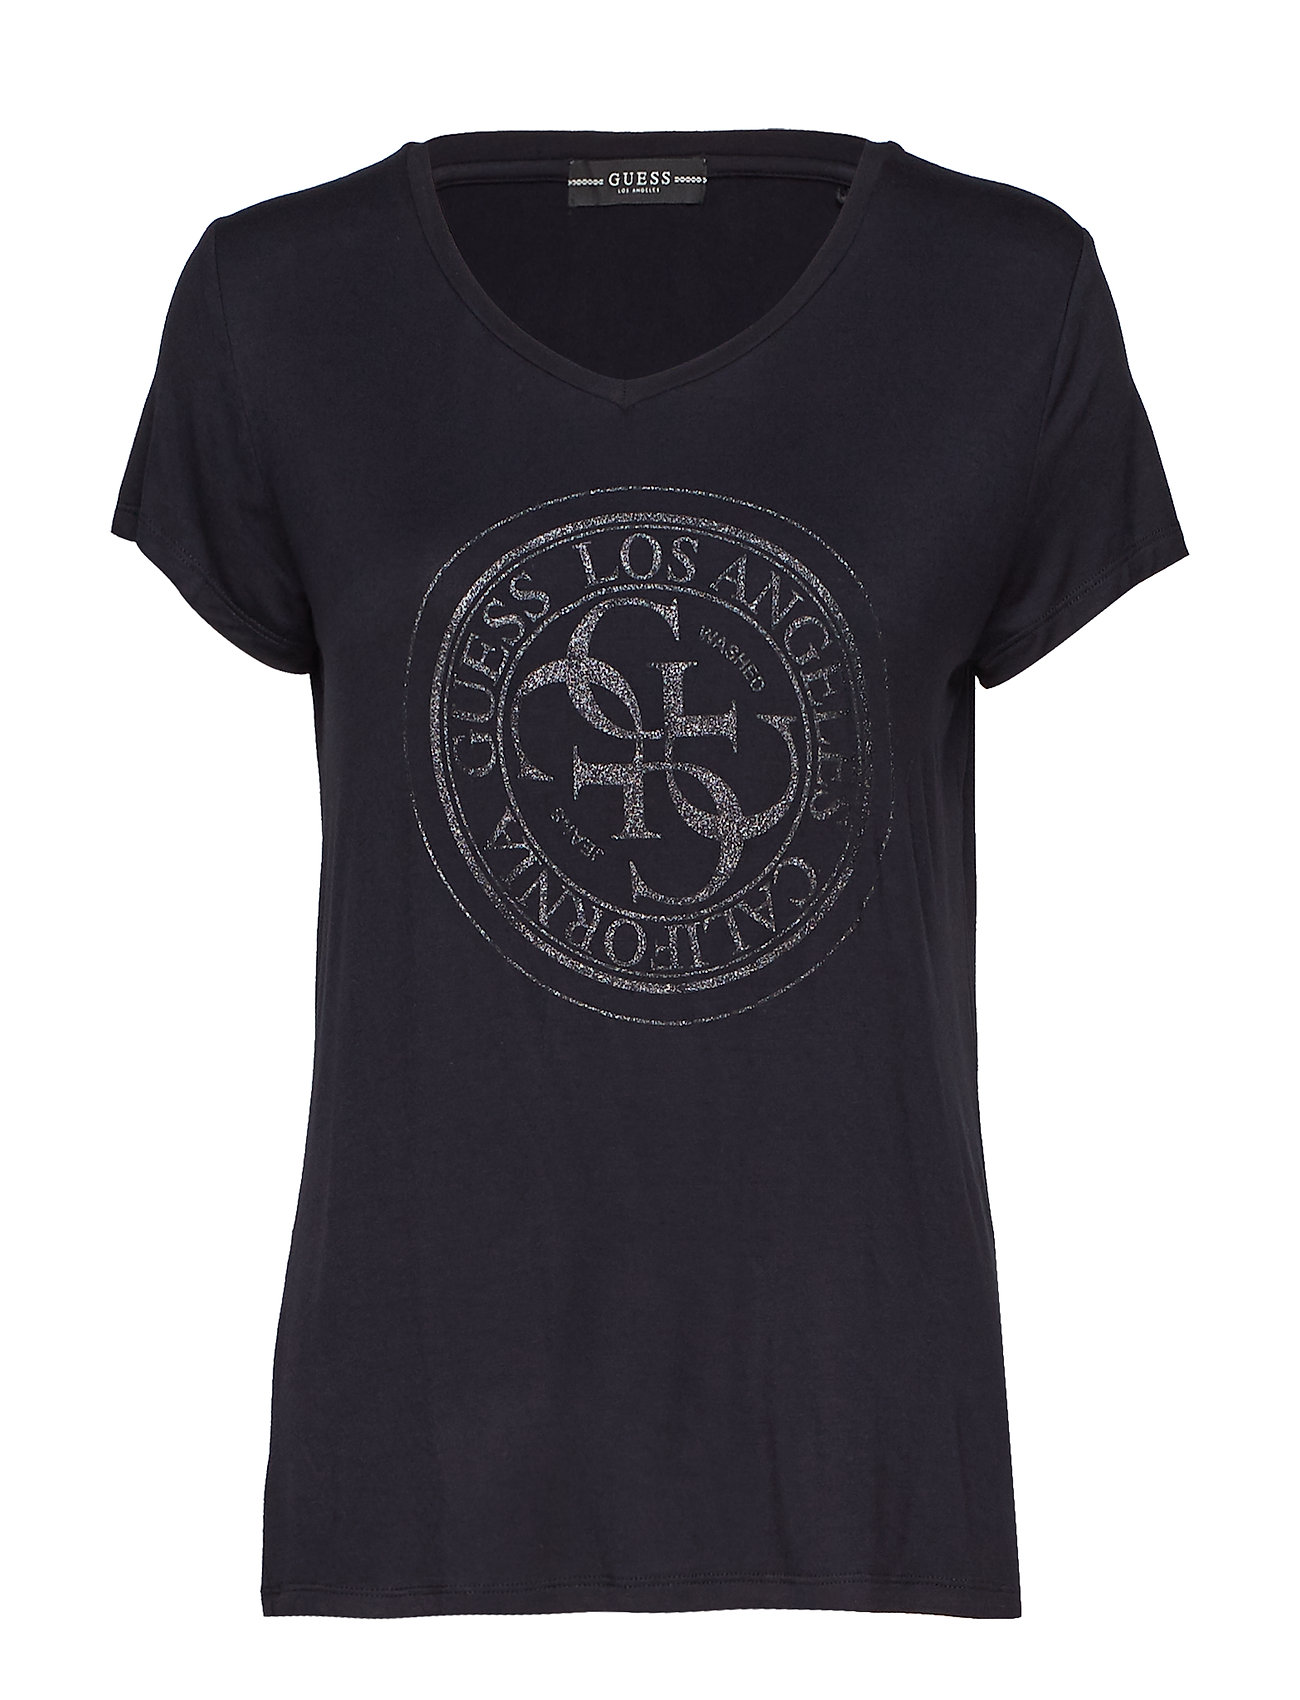 GUESS Jeans SS VN GLITTER STAMP TEE - JET BLACK A996